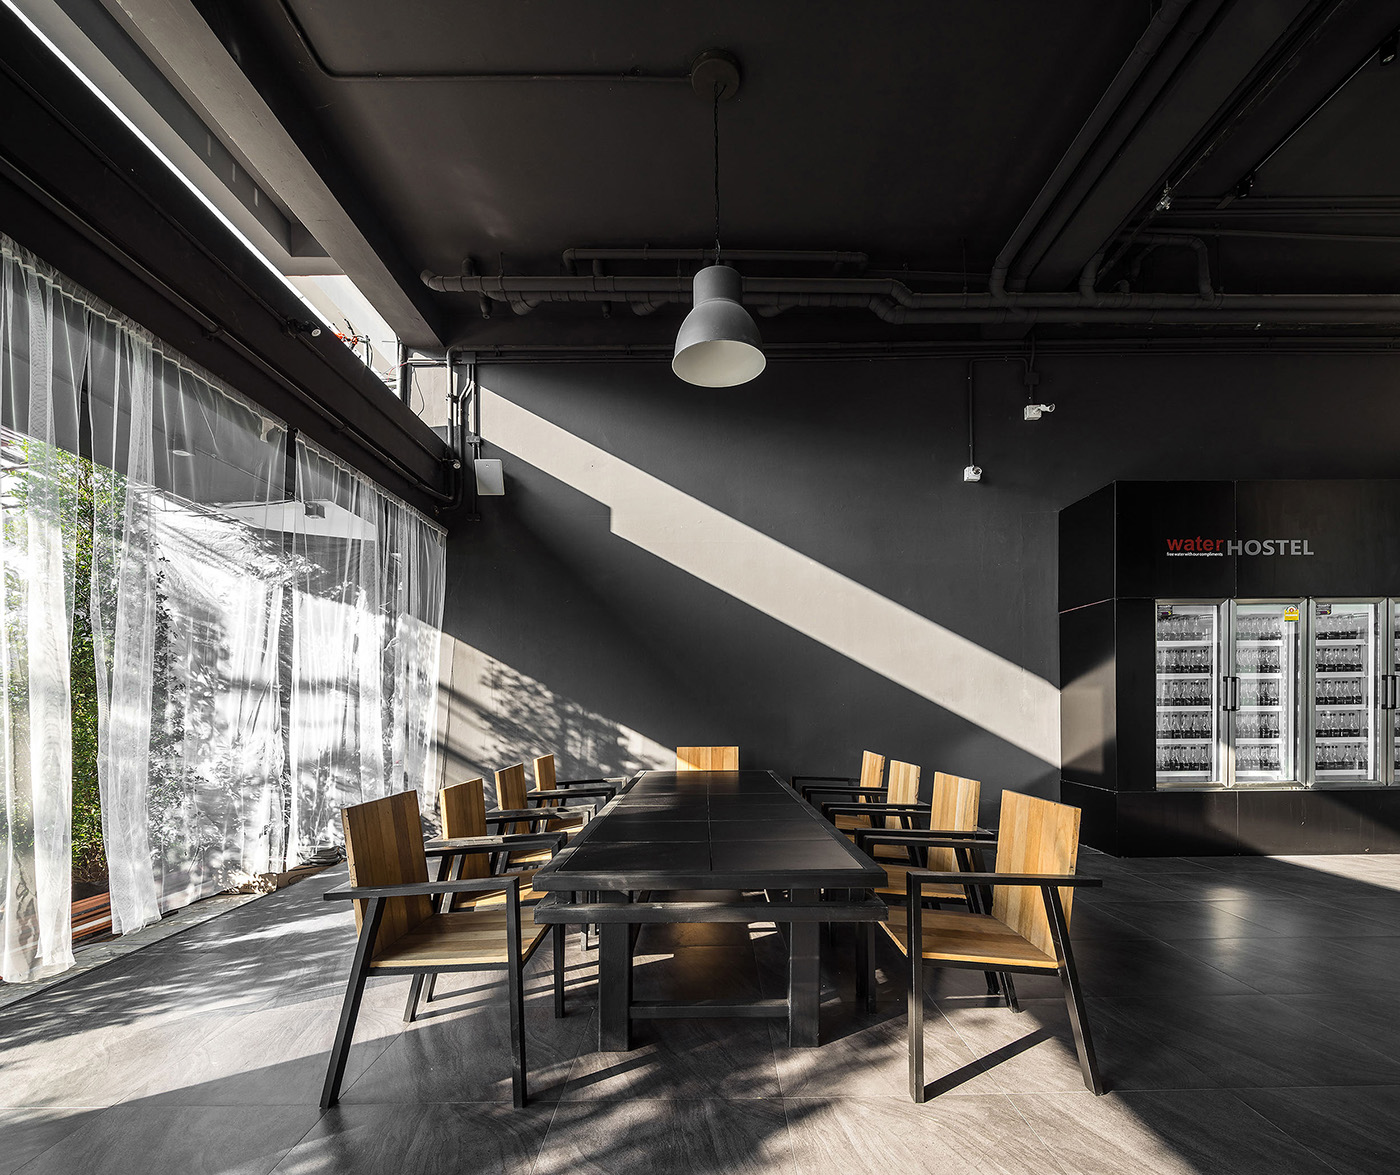 Hostel By Bed Chiangmai On Behance